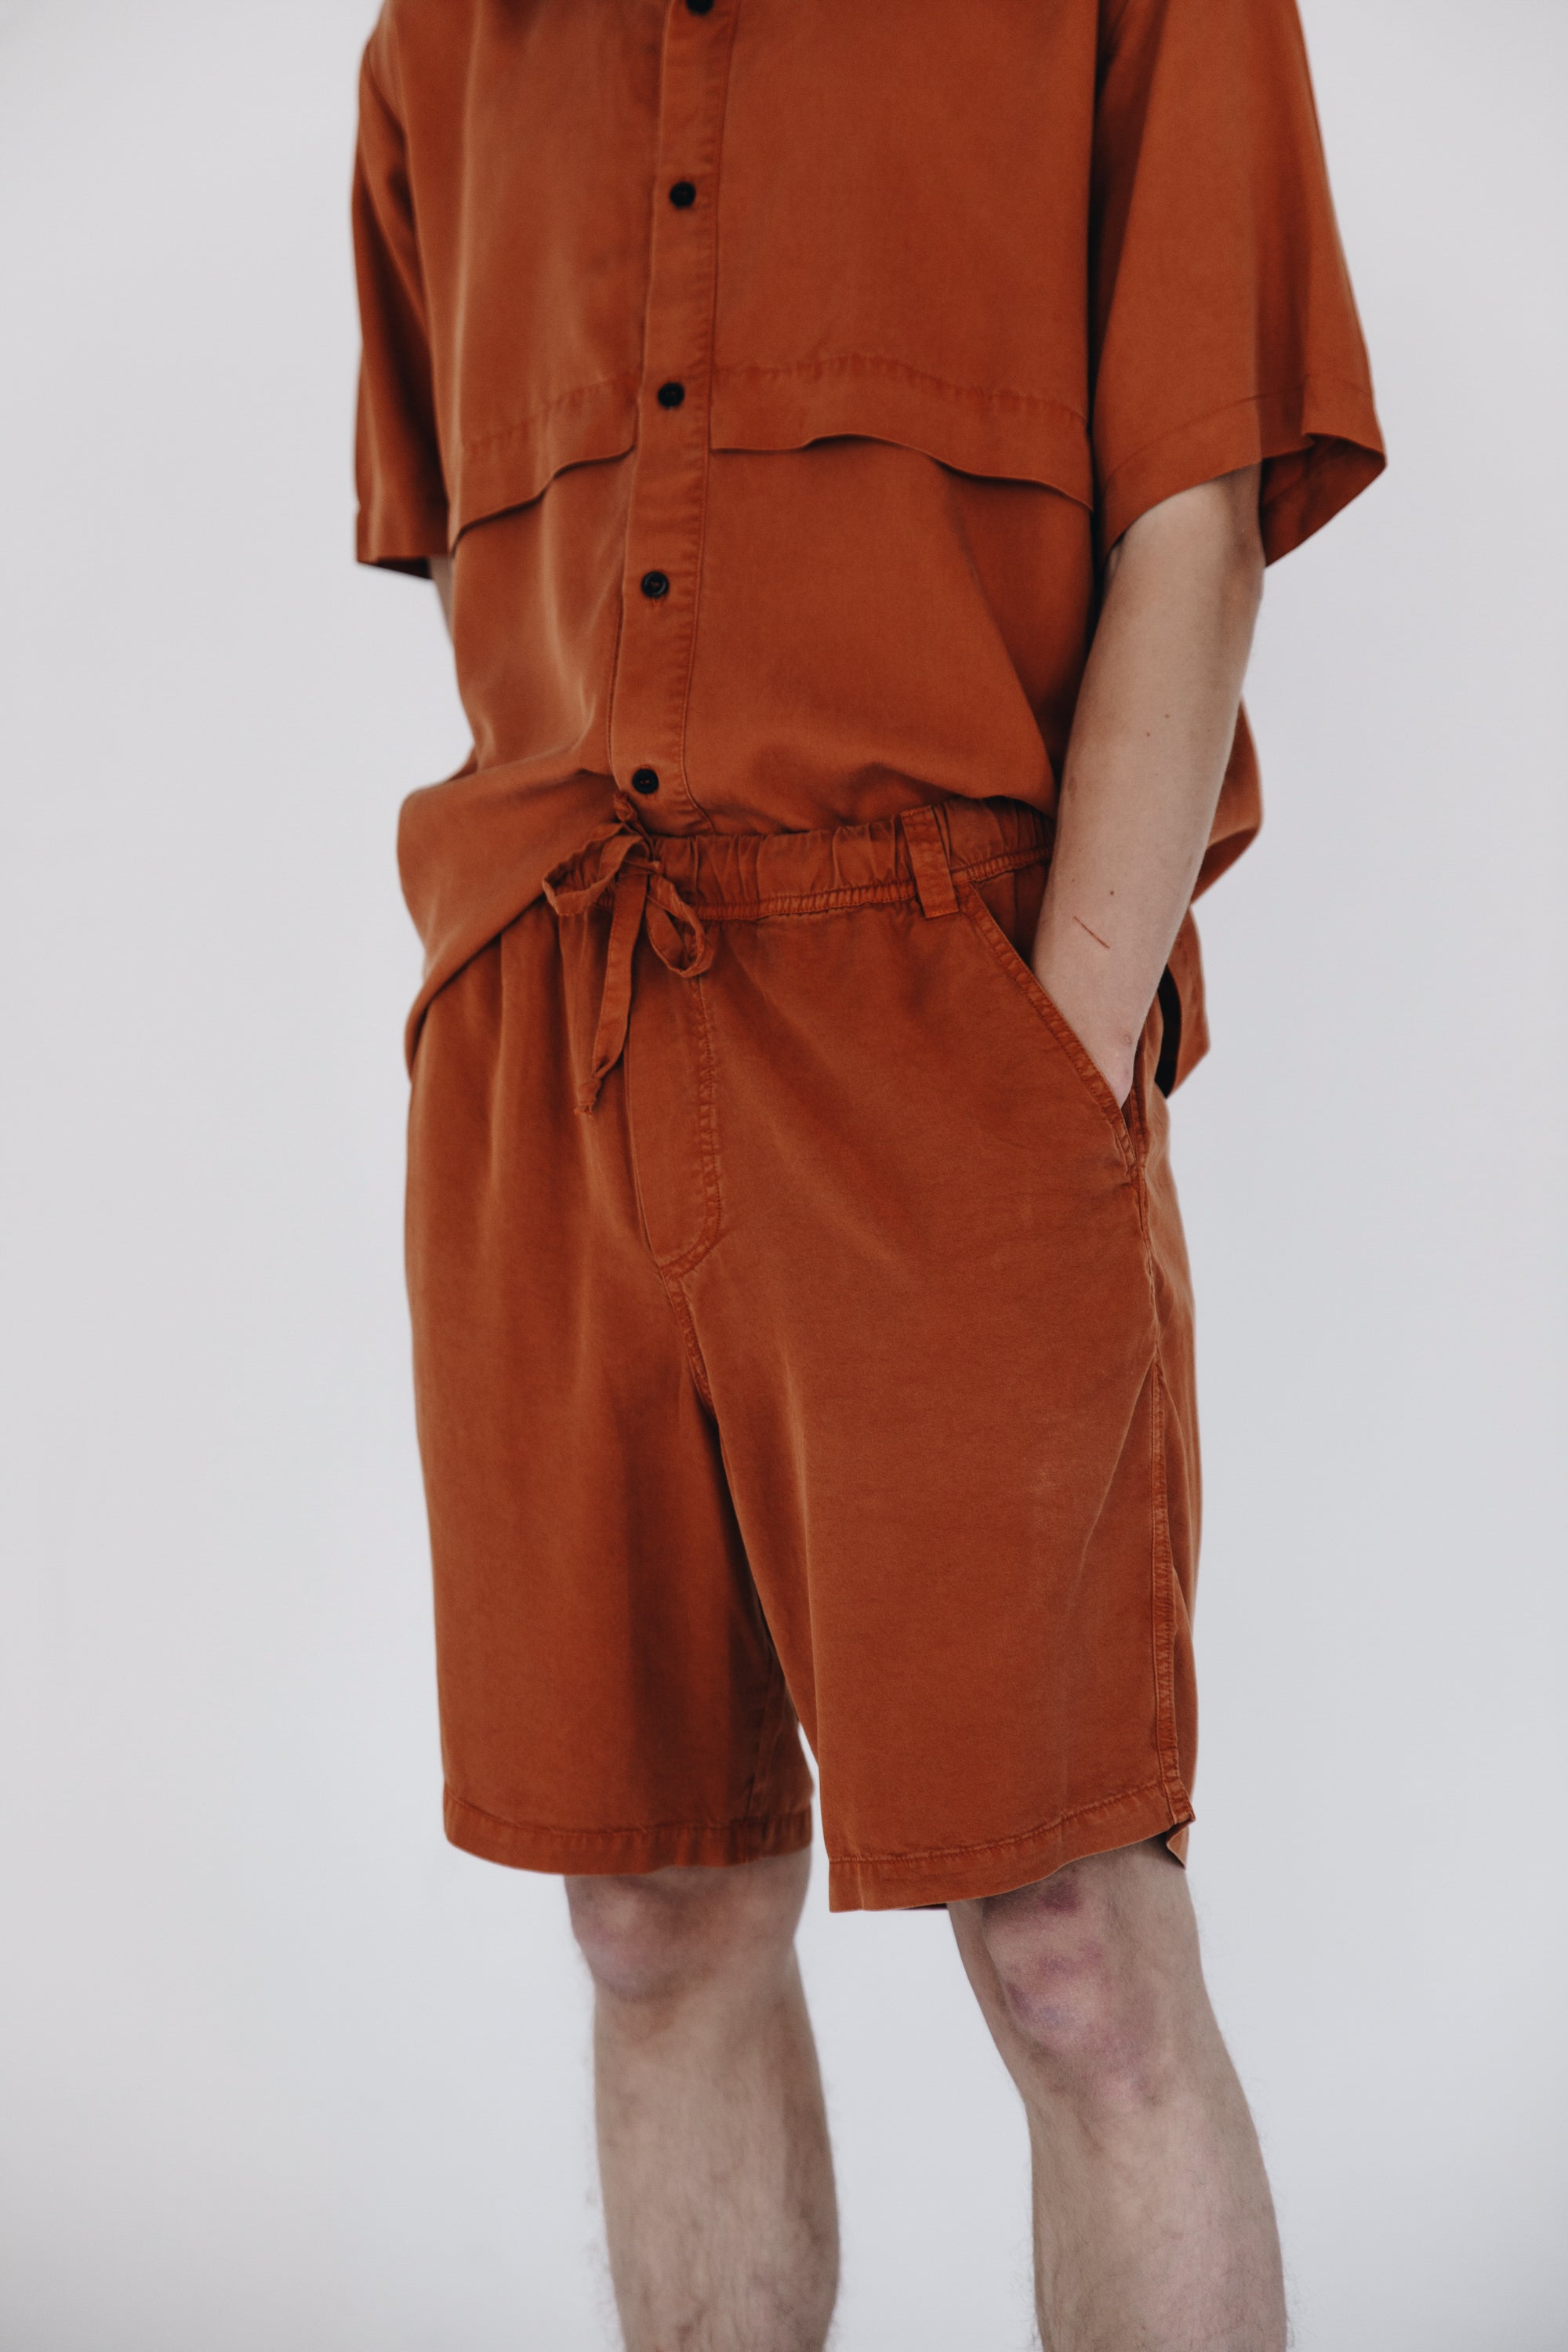 Burnt orange fluid lyocell shorts